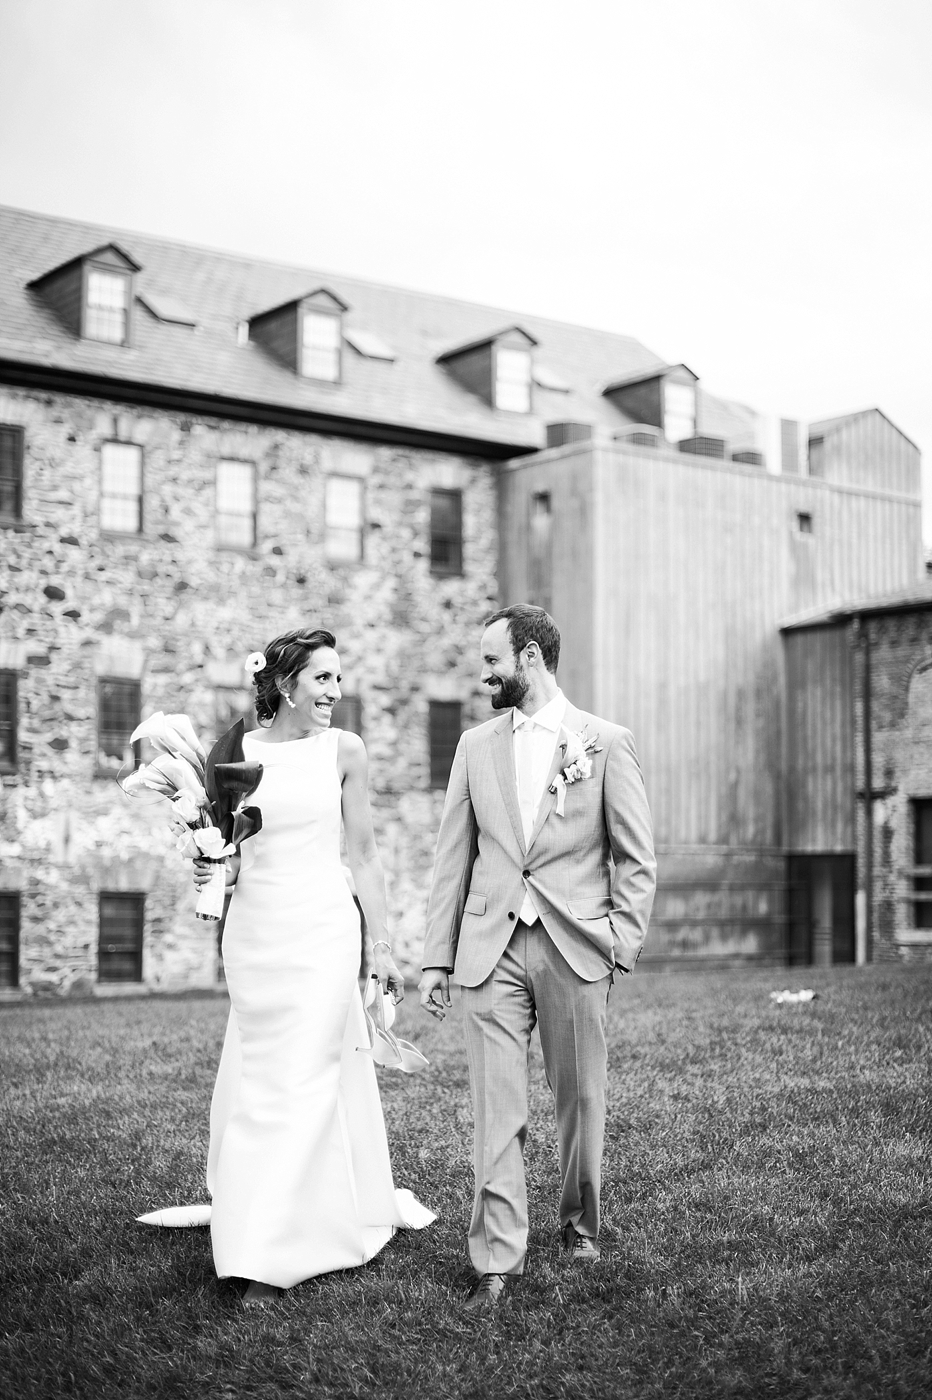 Mt Washington Mill Dye House Wedding